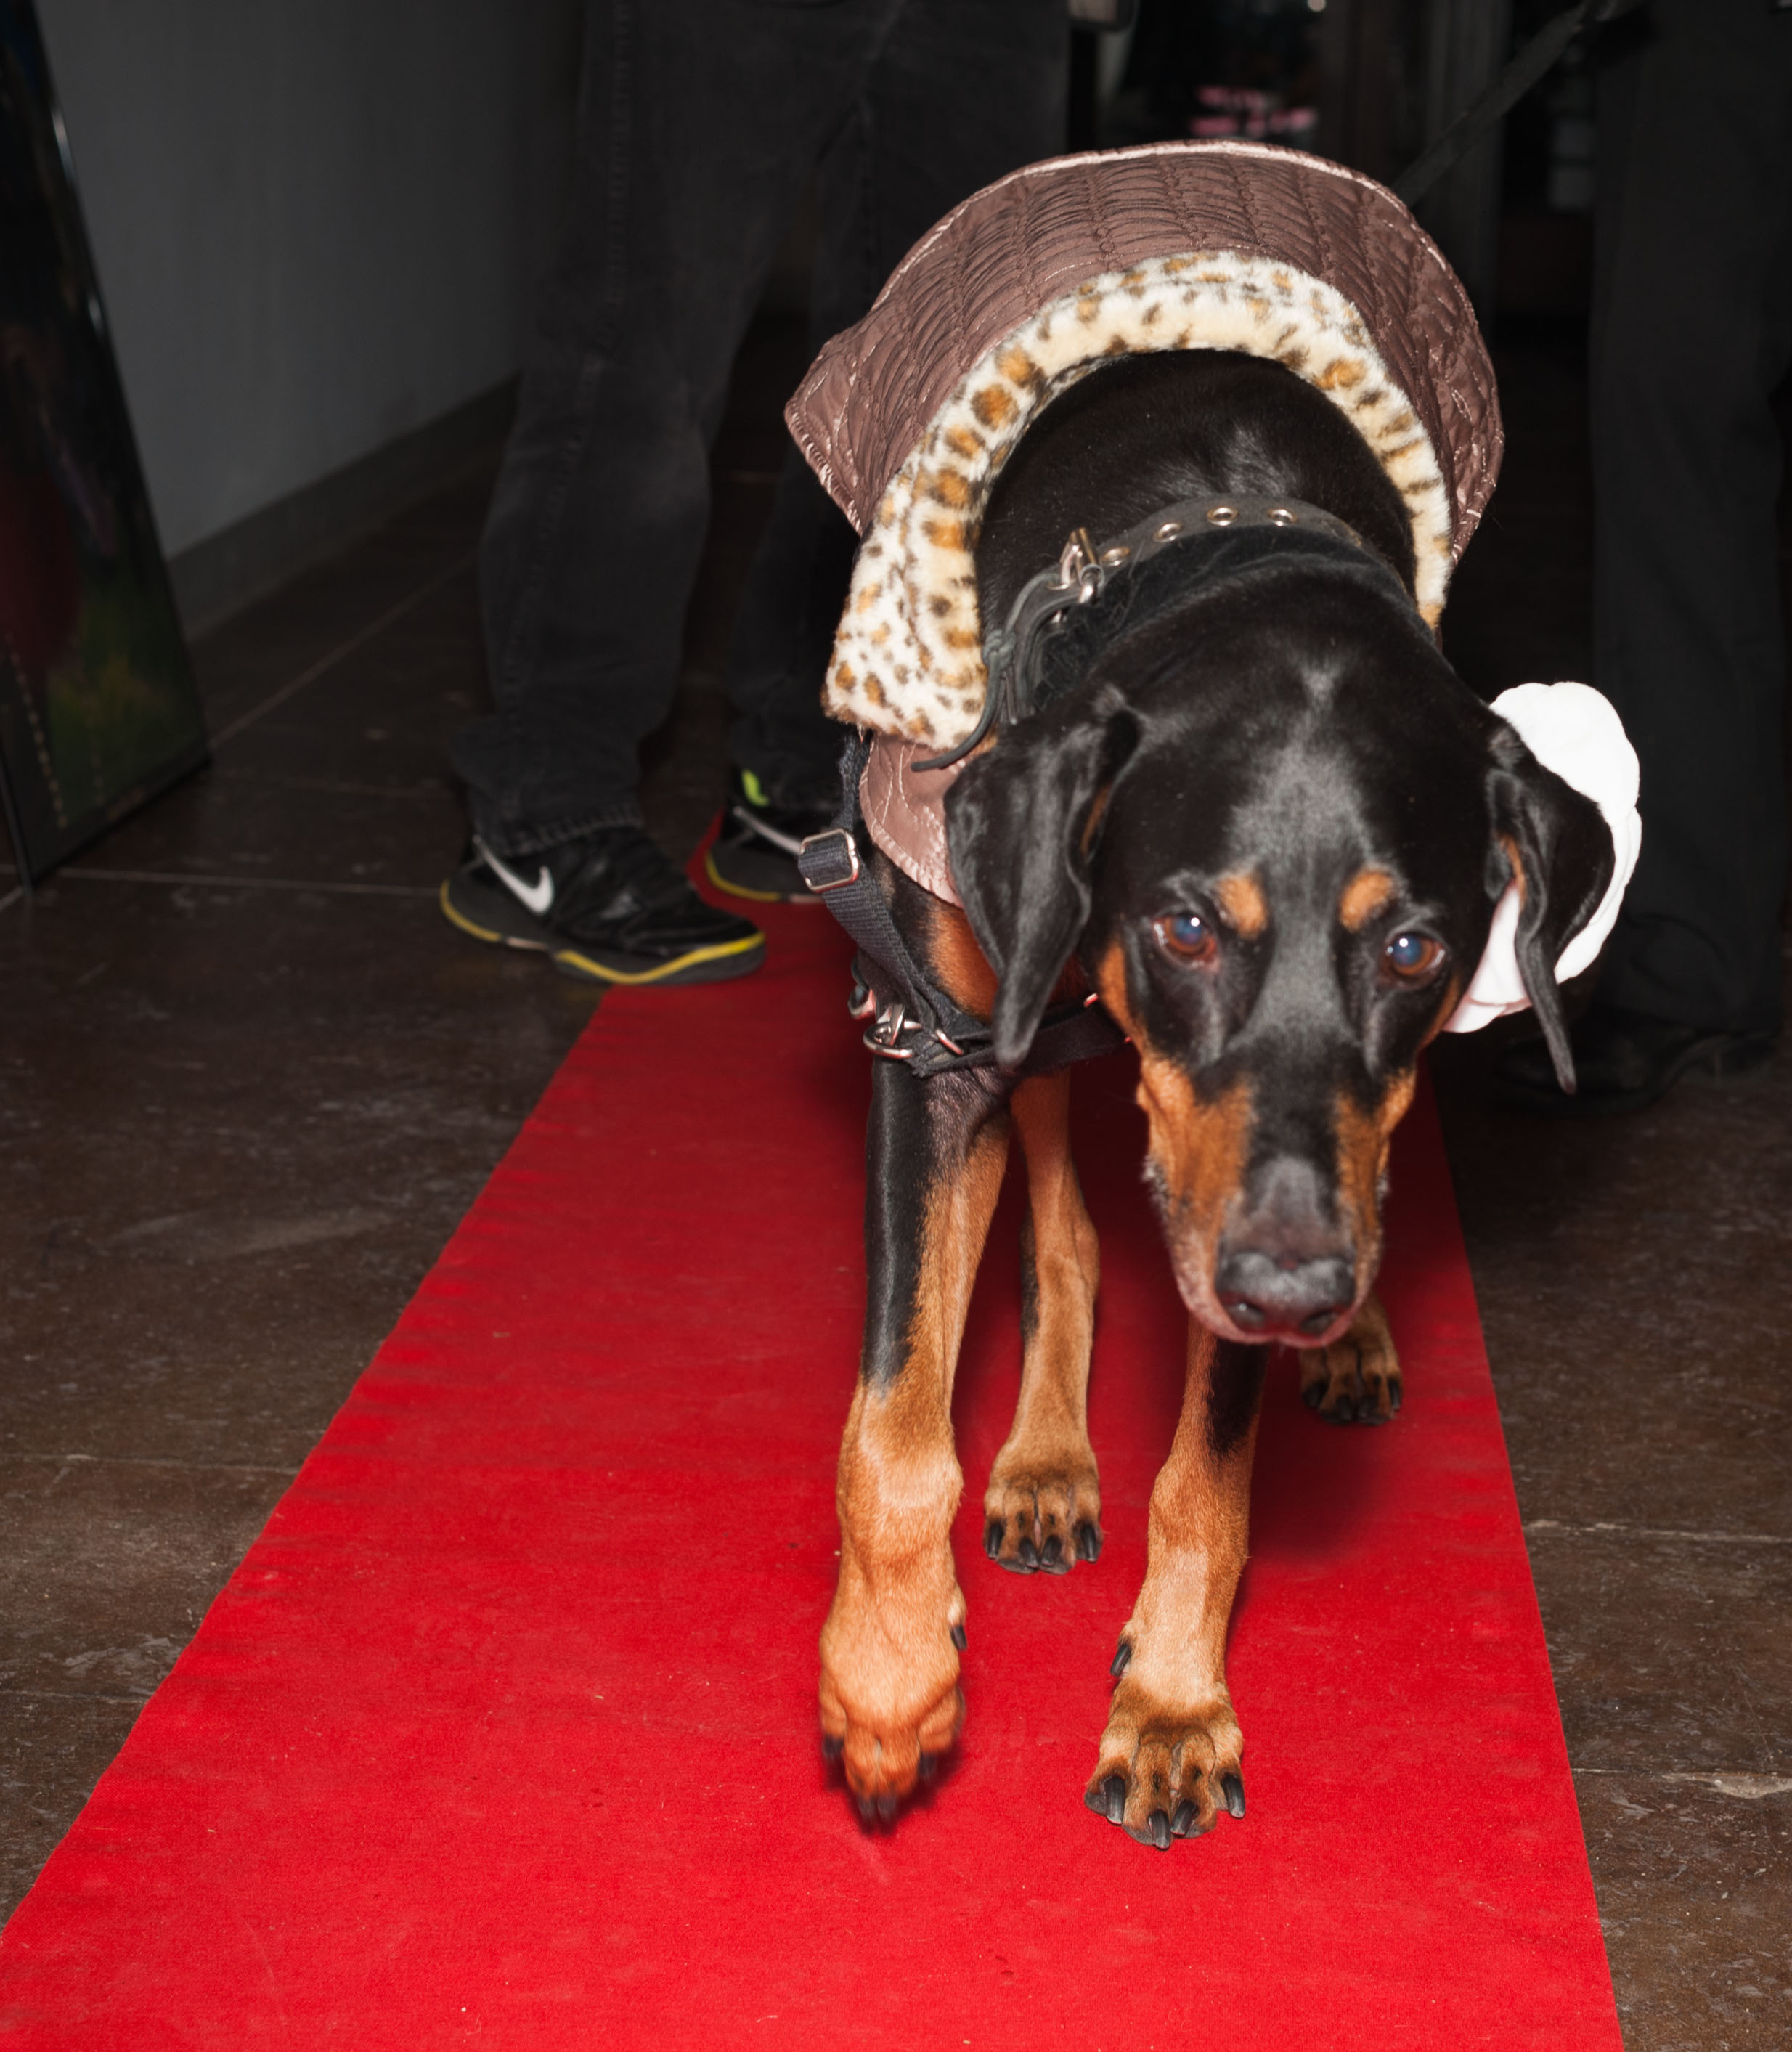 Ruby Walks the Red Carpet / Trylon microcinema / Minneapolis, Minnesota / November 20th, 2014 / Photo by Gamini Kumara